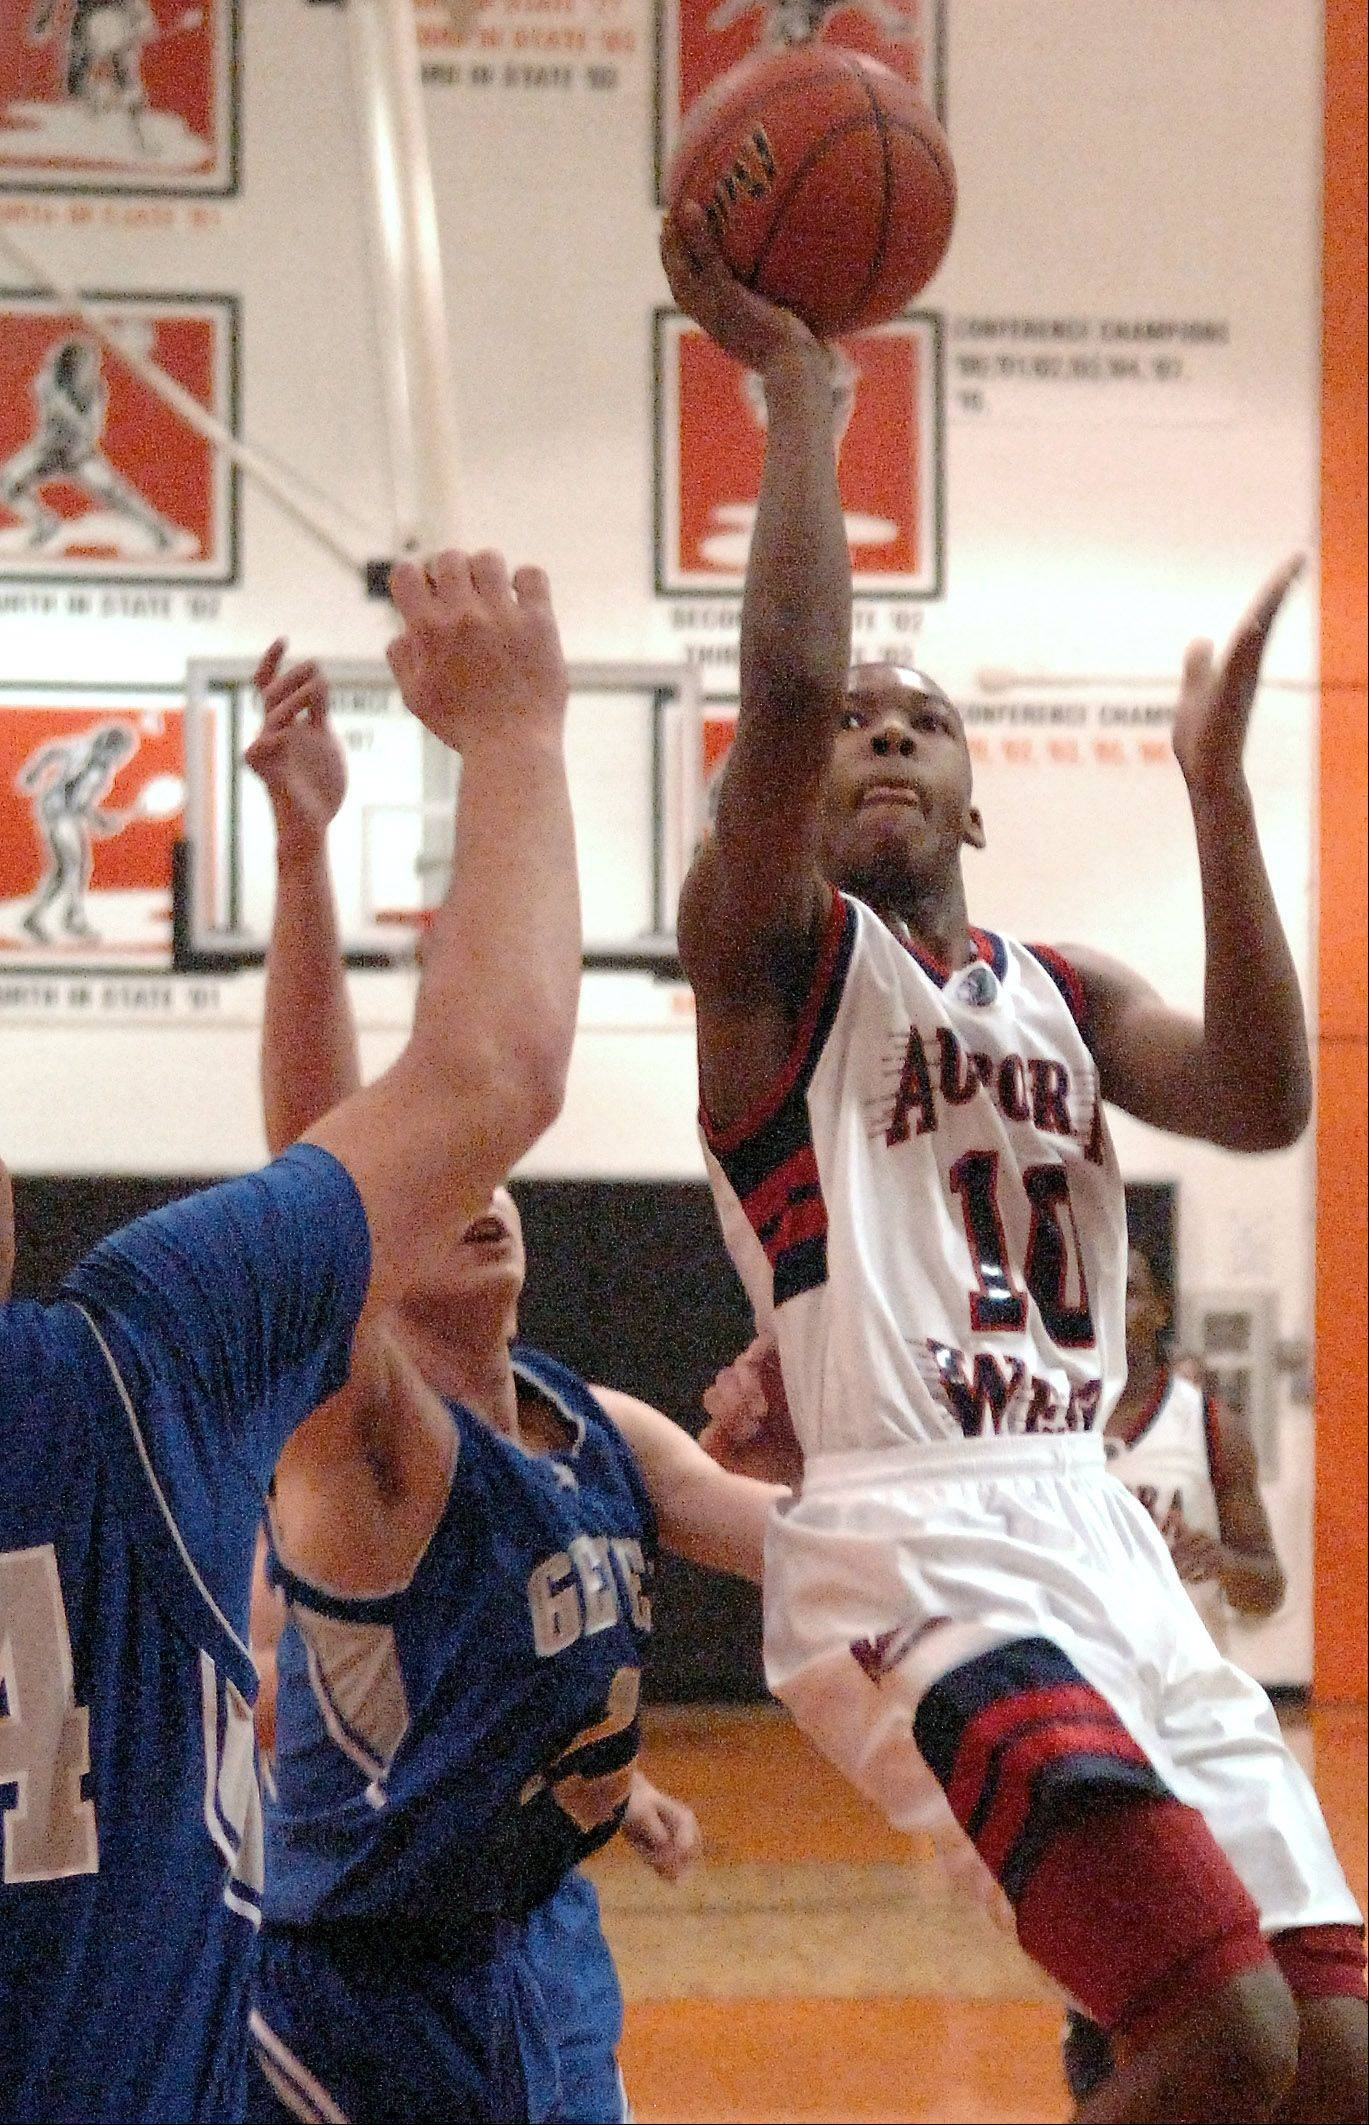 Images from the Geneva vs. West Aurora boys regional basketball final Friday, March 1, 2013.